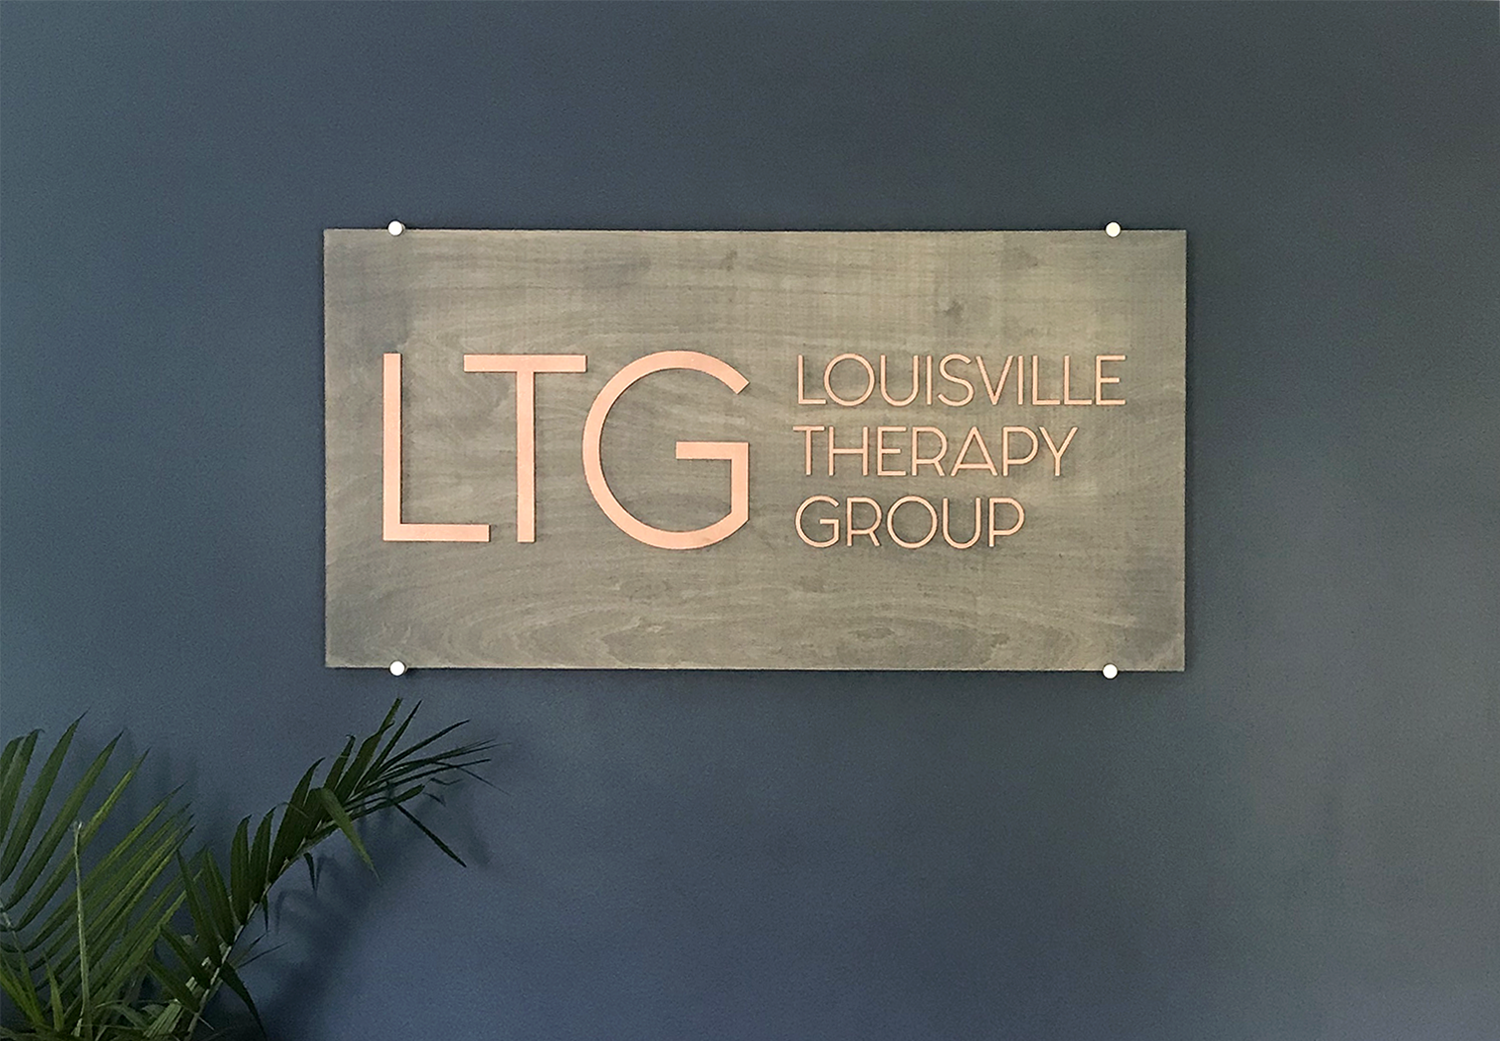 Louisville Therapy Group